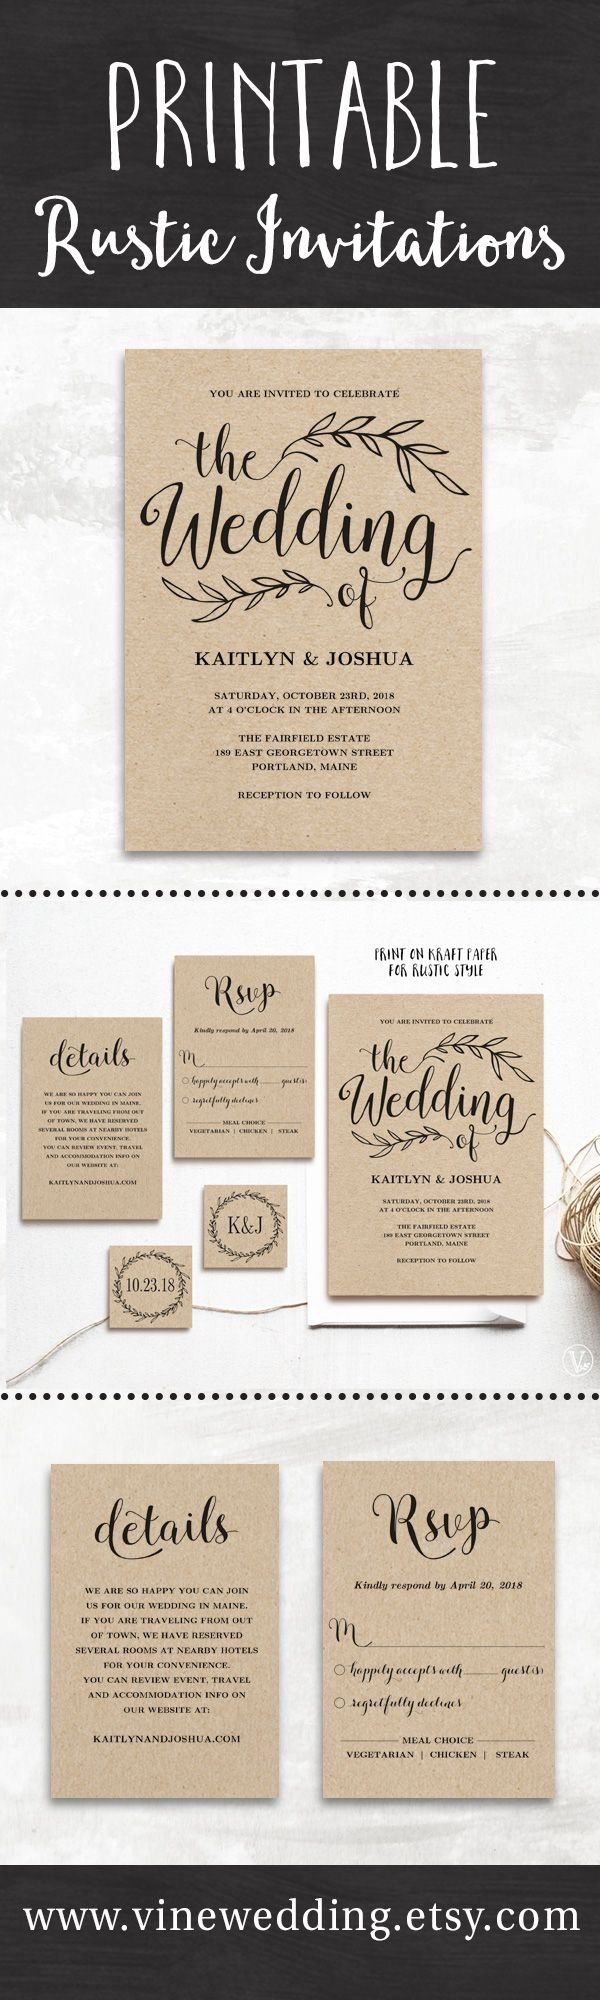 casual evening wedding invitation wording%0A Beautiful rustic wedding invitations  Editable instant download templates  you can print as many as you